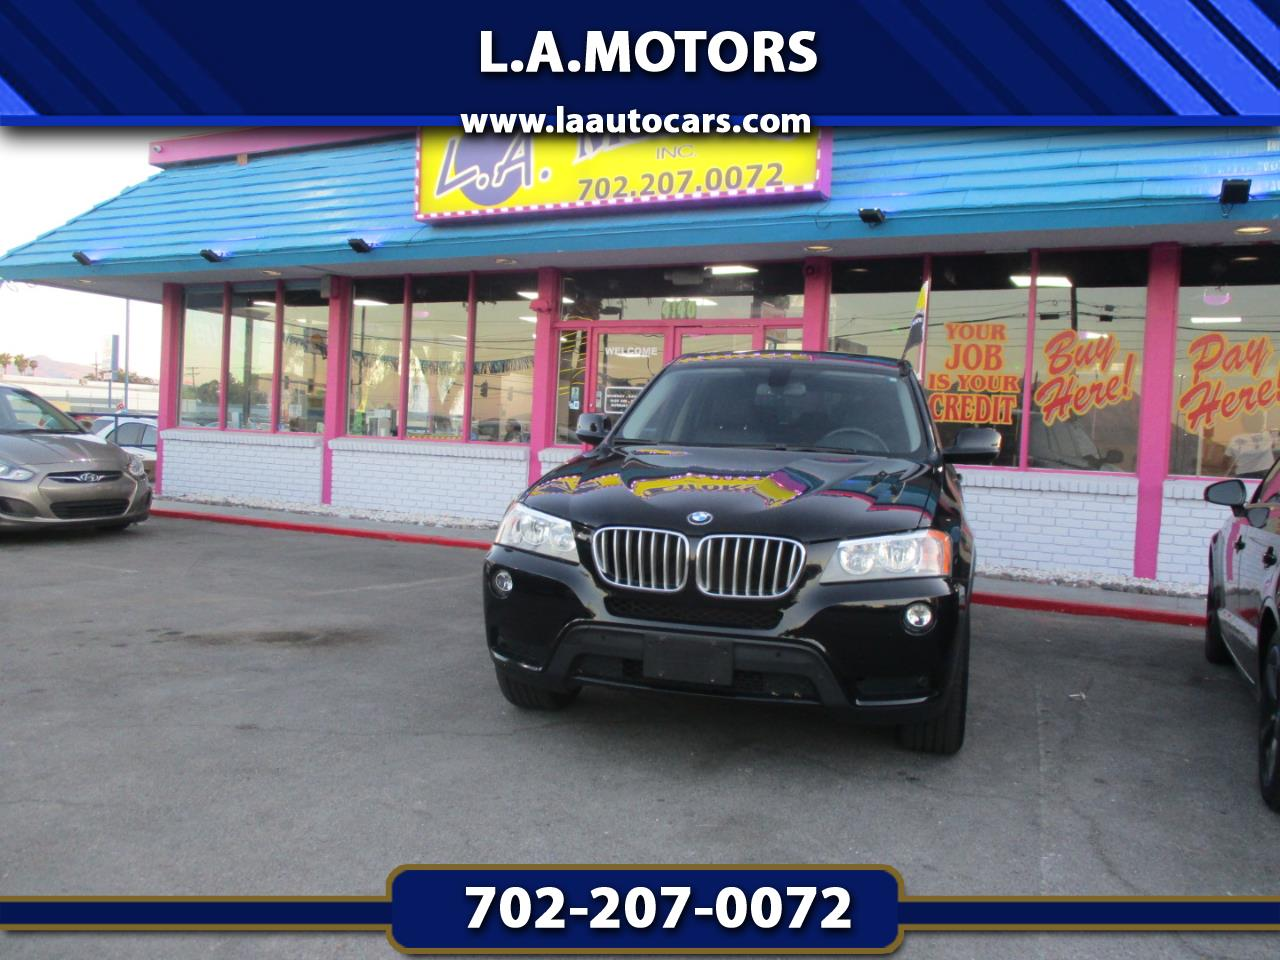 Used 2014 Bmw X3 Xdrive28i For Sale In Las Vegas Nv L A Auto Cars